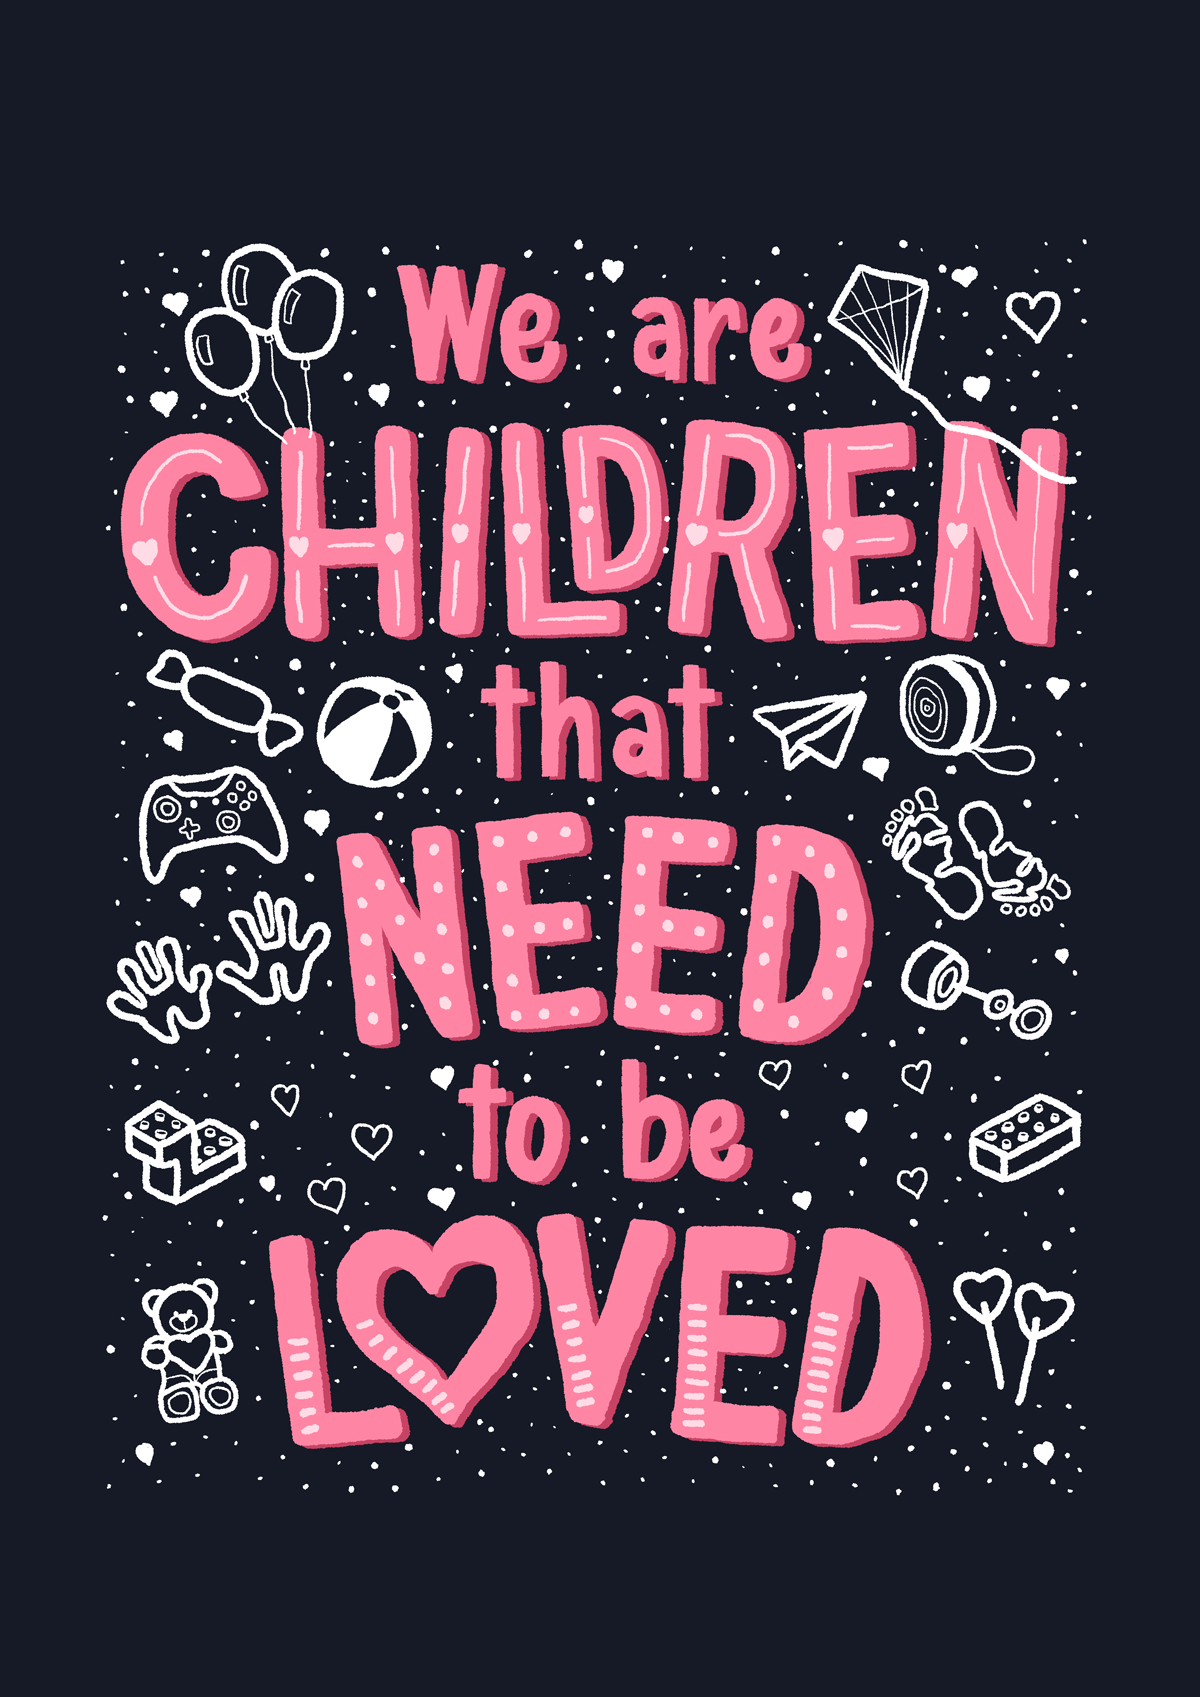 We Are Children That Need To Be Loved - P!nk